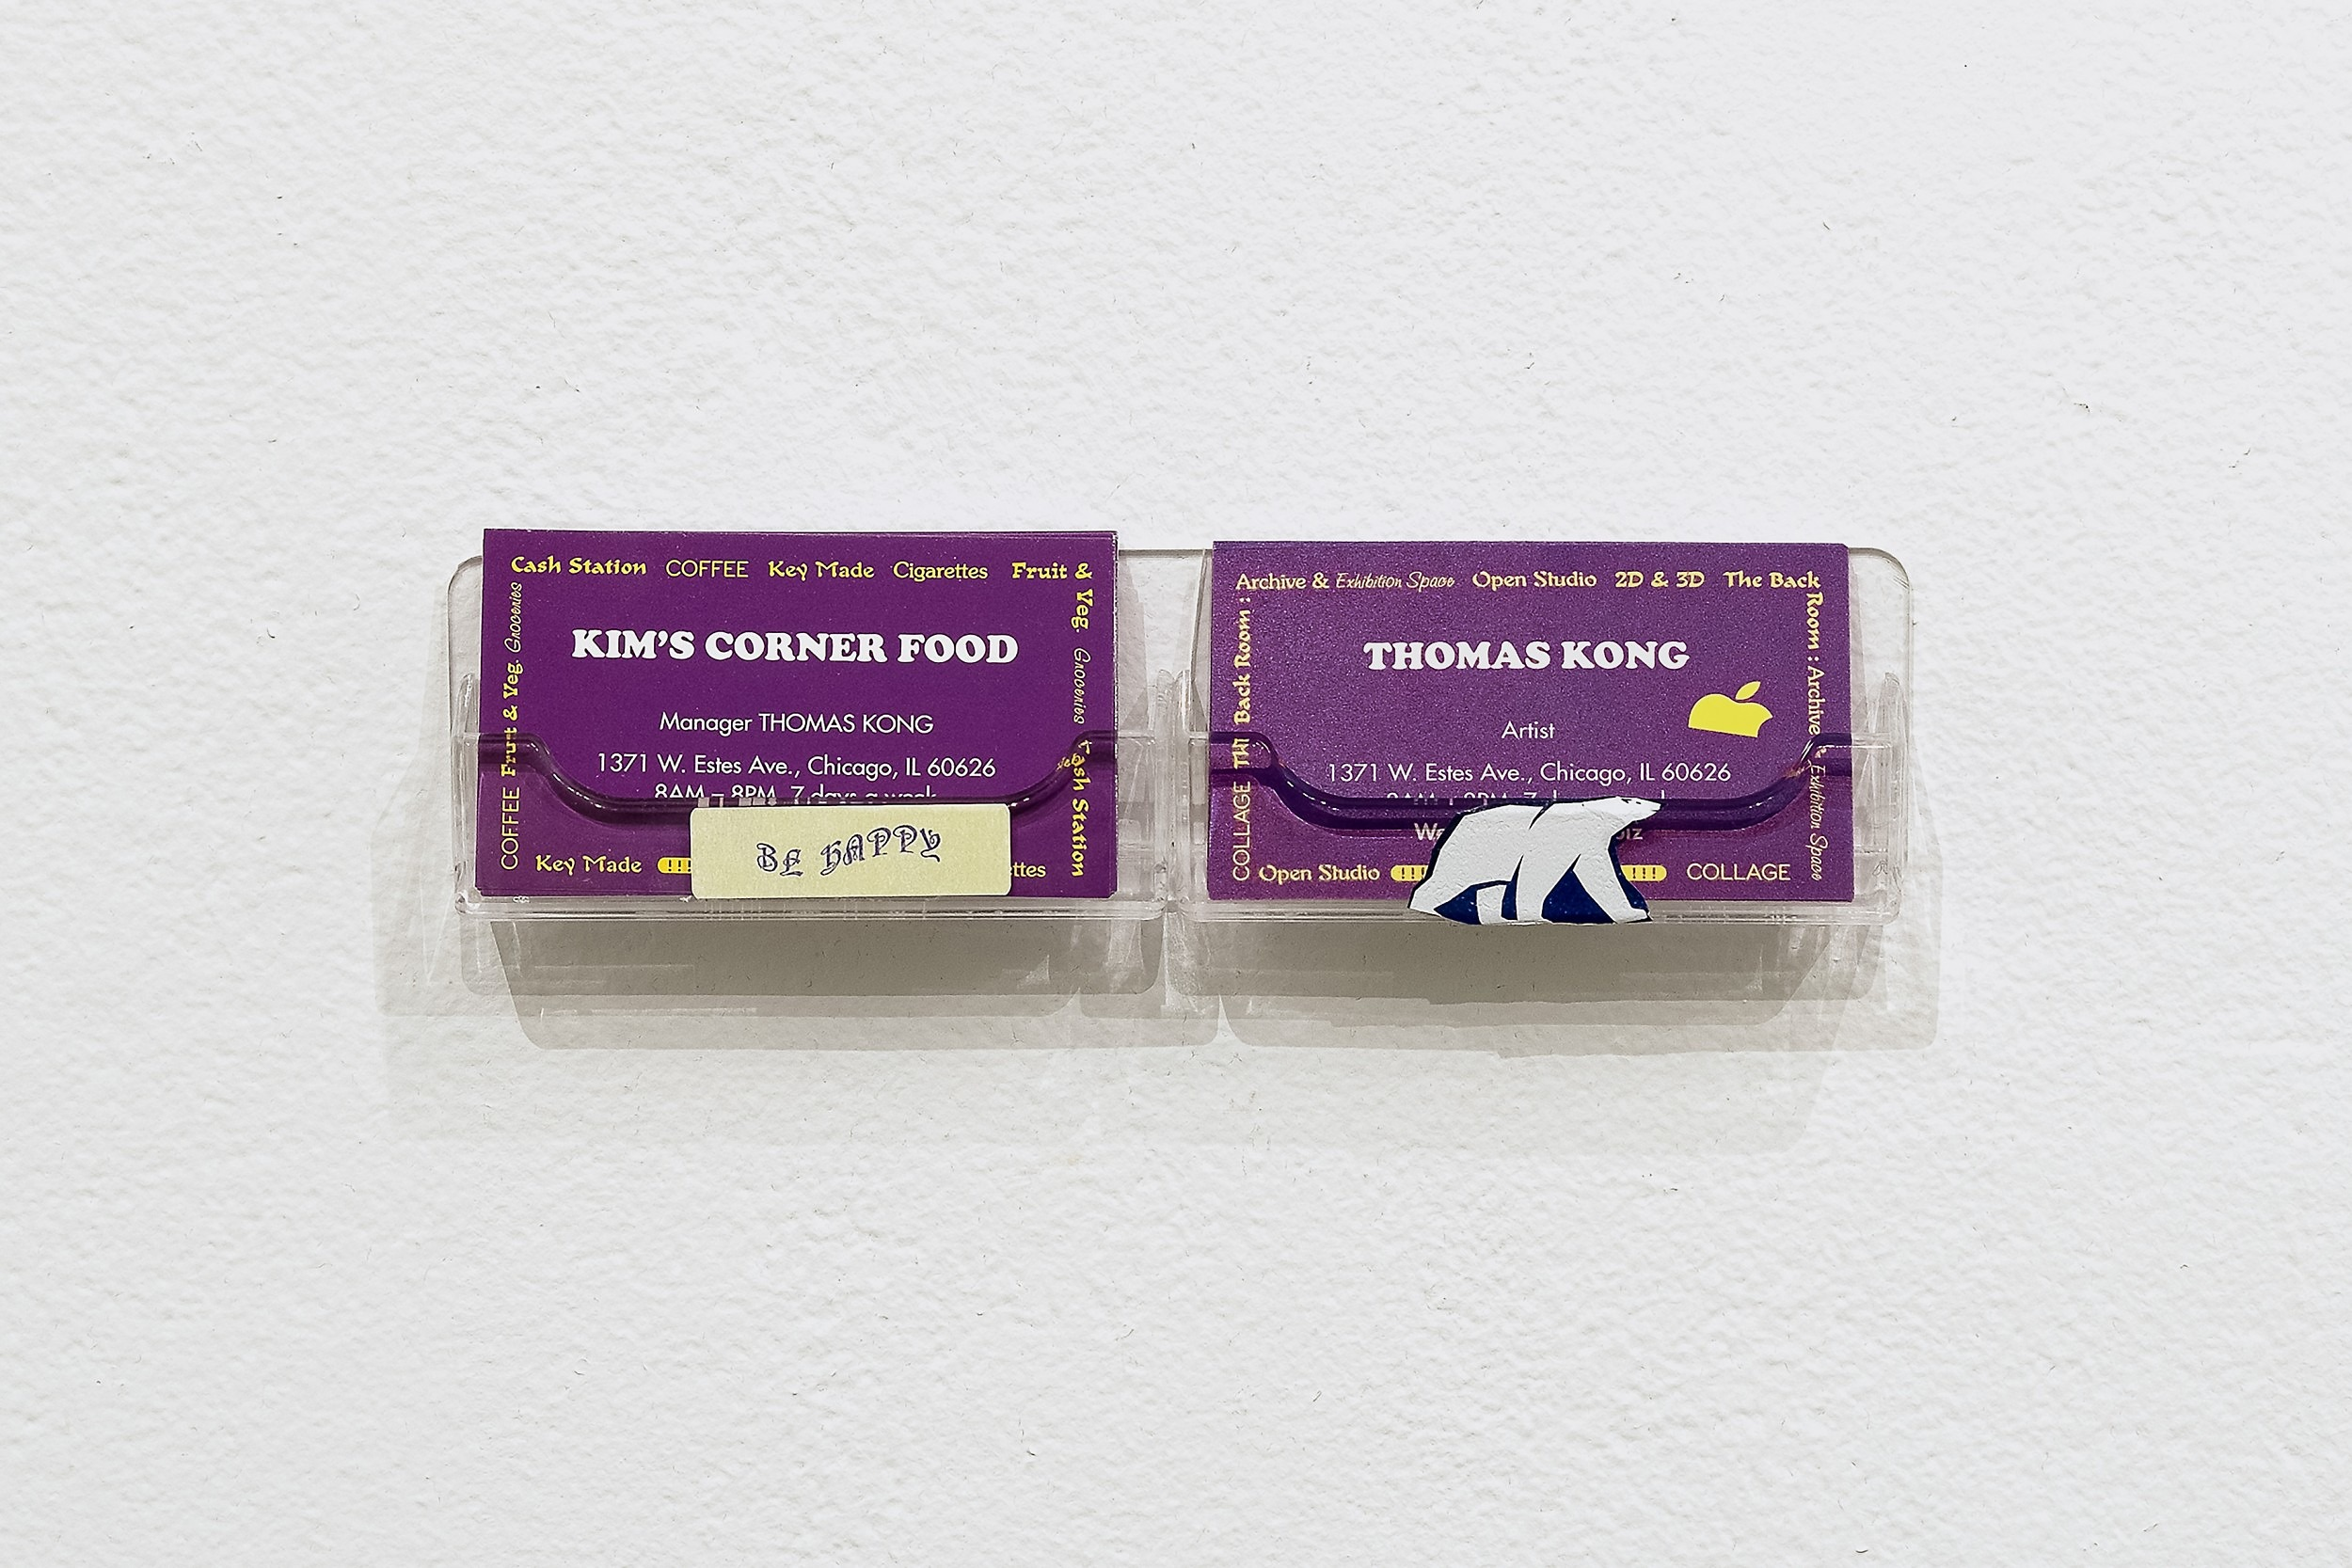 Thomas Kong/Dan Miller, Be Happy, 2015–19 Two-sided business cards, paper collage on acrylic business card holder, 2 x 8.2 x 0.75 inches Installation view, Coco Hunday Presents, Atlanta Contemporary, Aug–Dec 2019 Photo by Kasey Medlin